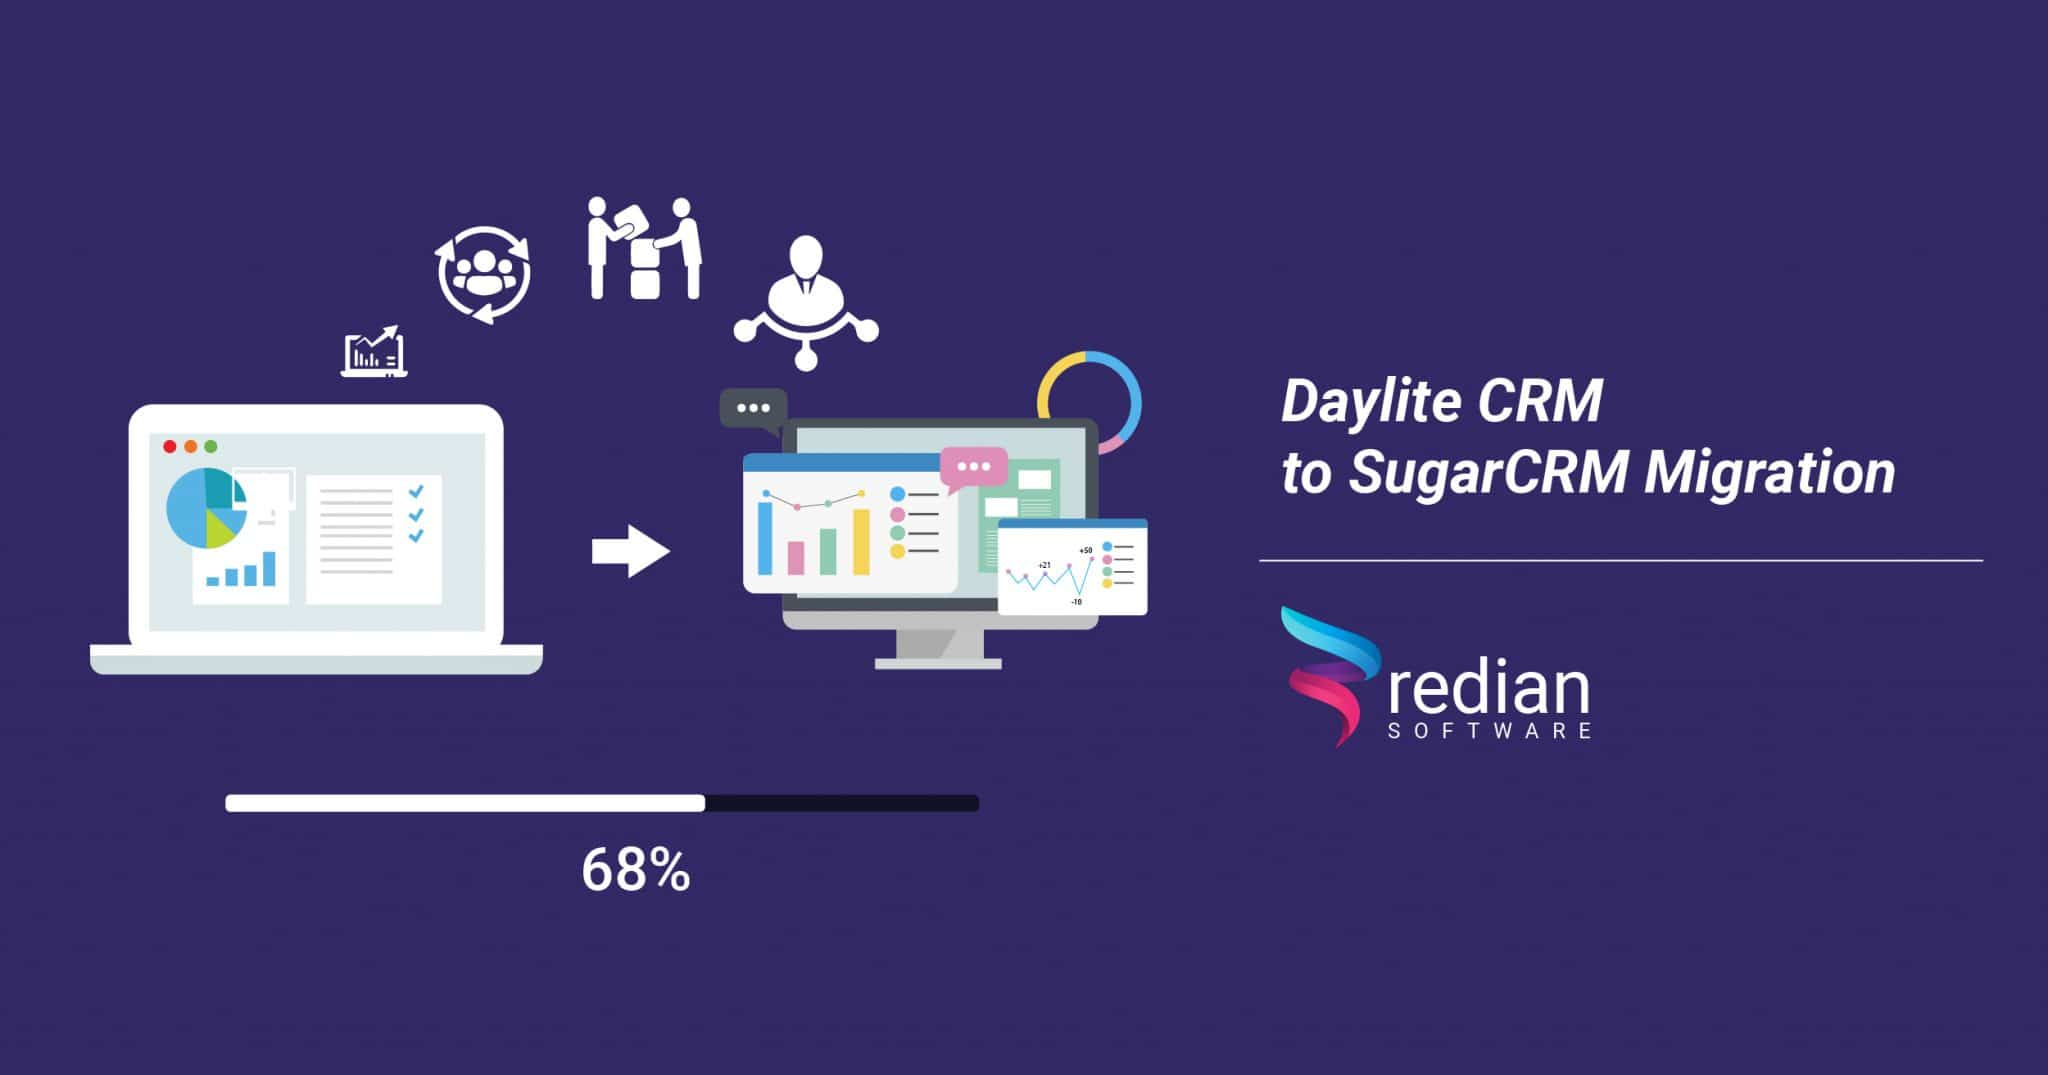 DayliteCRM to SugarCRM migration